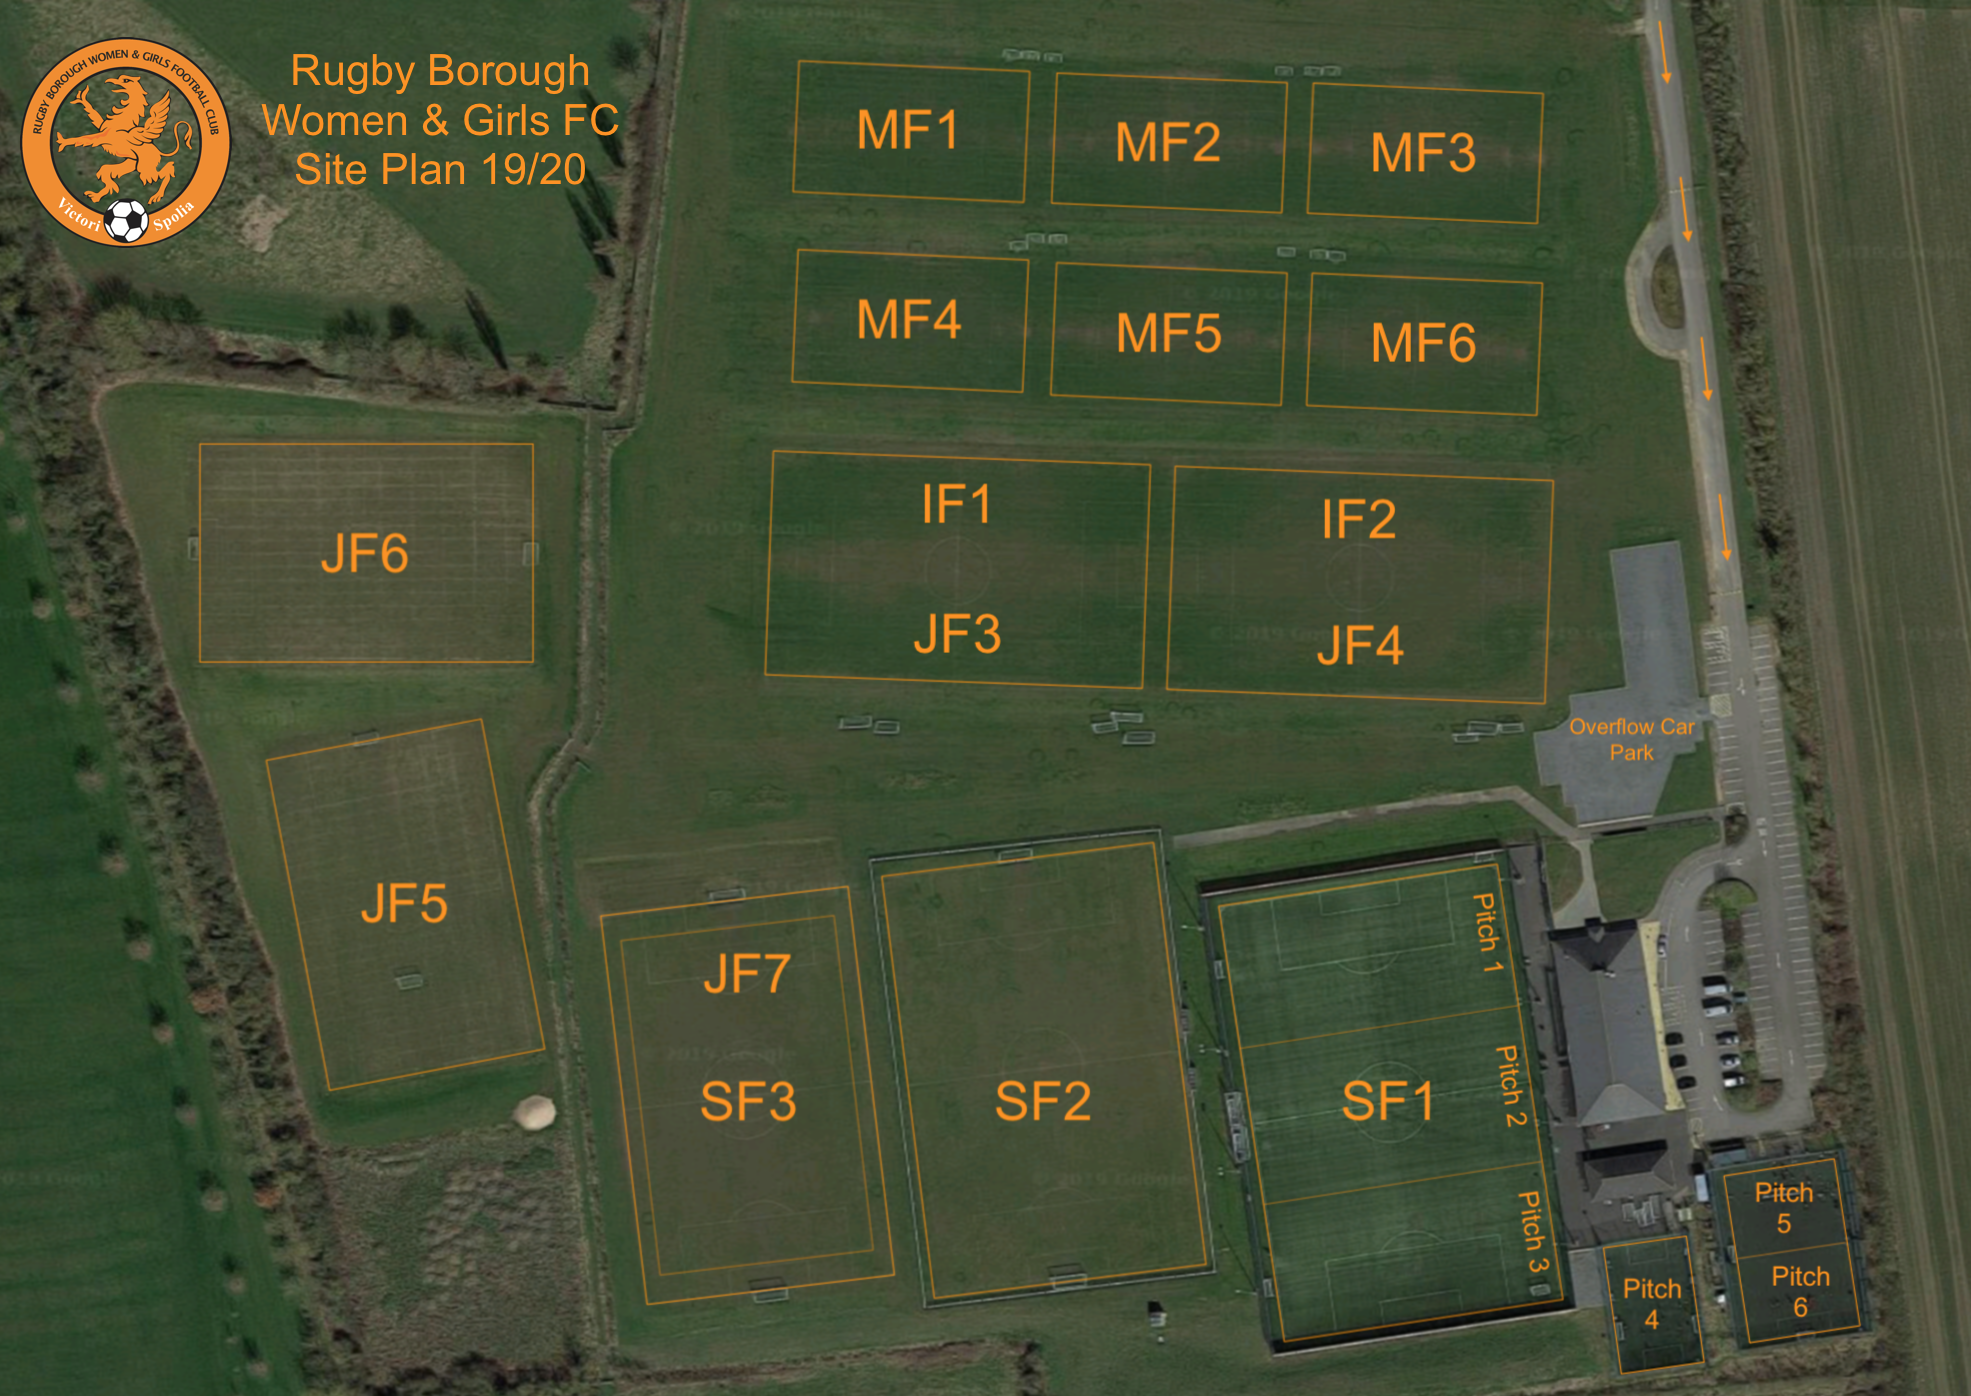 Rugby Borough FC - Pitches